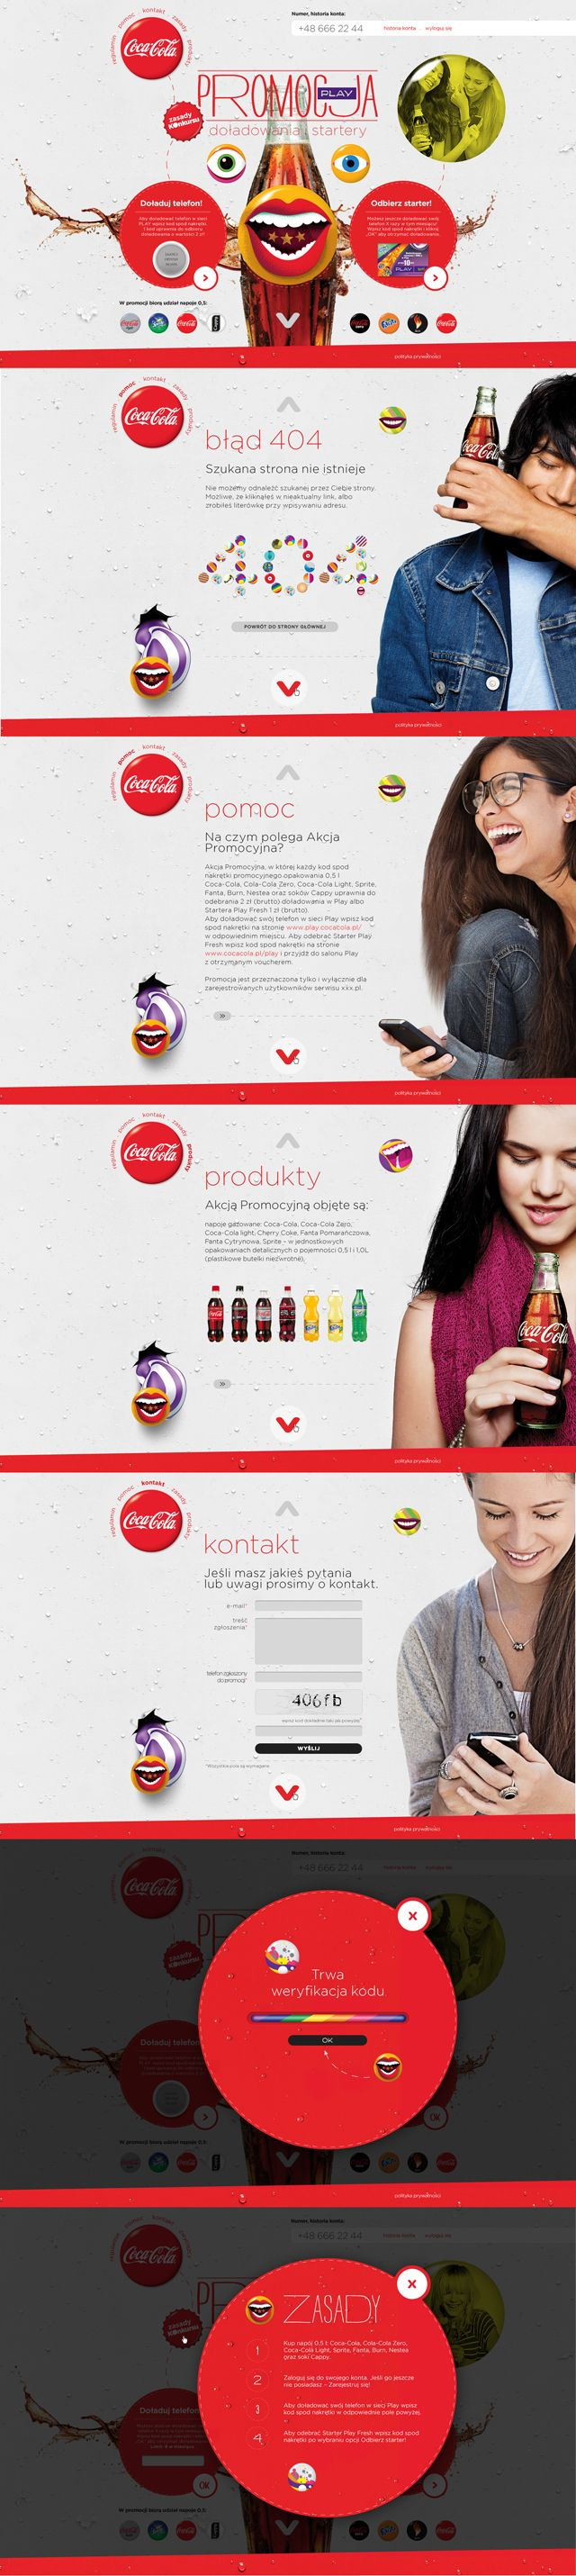 Coca-cola top promo with play - webdesign - Wojtek Zawadzki | #webdesign #it #web #design #layout #userinterface #website #webdesign < repinned by www.BlickeDeeler.de | Take a look at www.WebsiteDesign-Hamburg.de